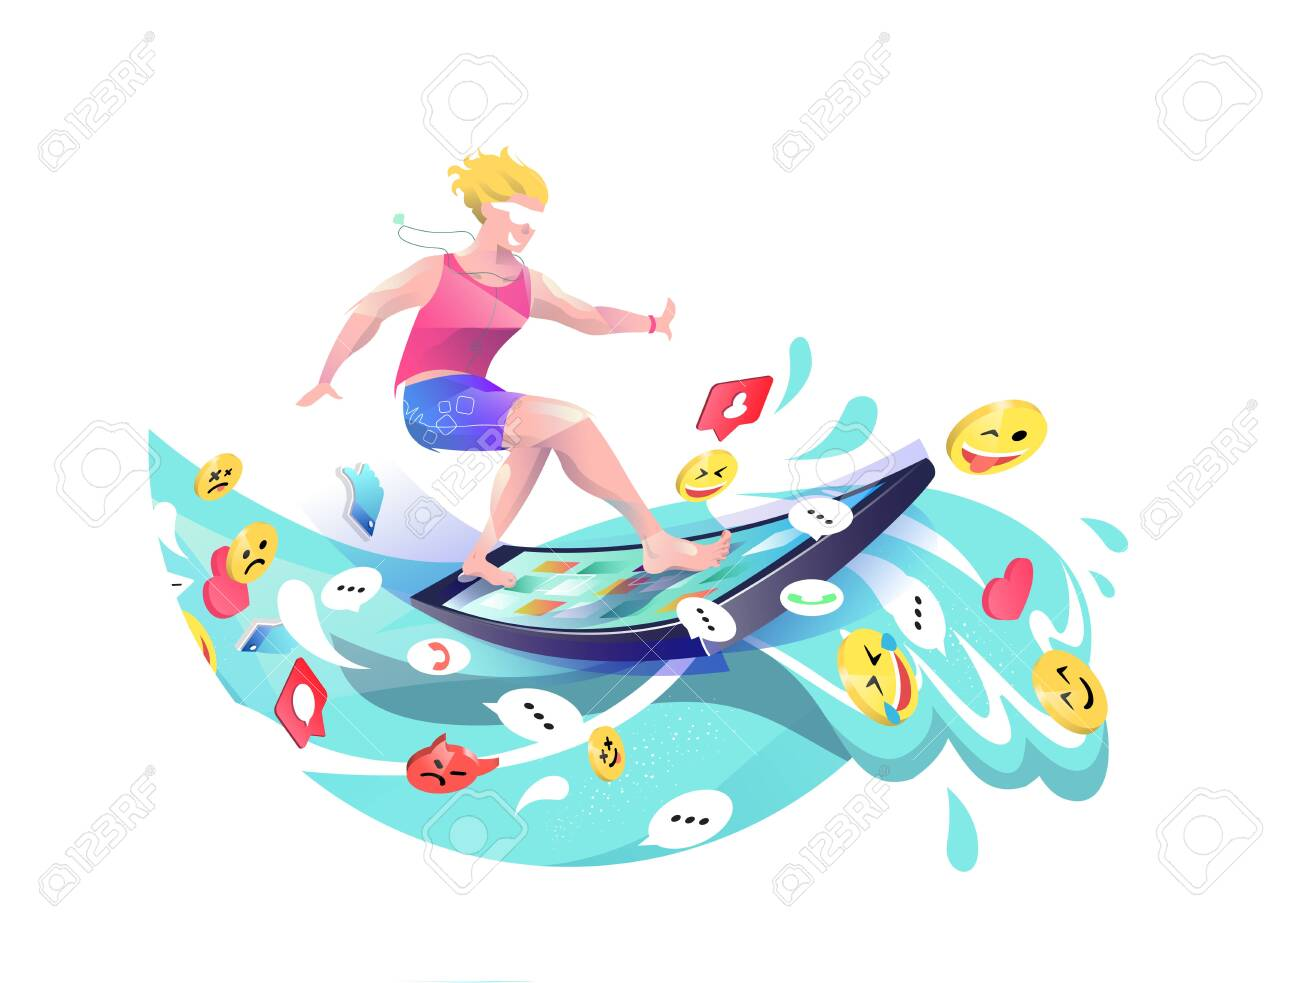 Concept in flat style with man surfing through internet. Business and news. Vector illustration. - 136053082